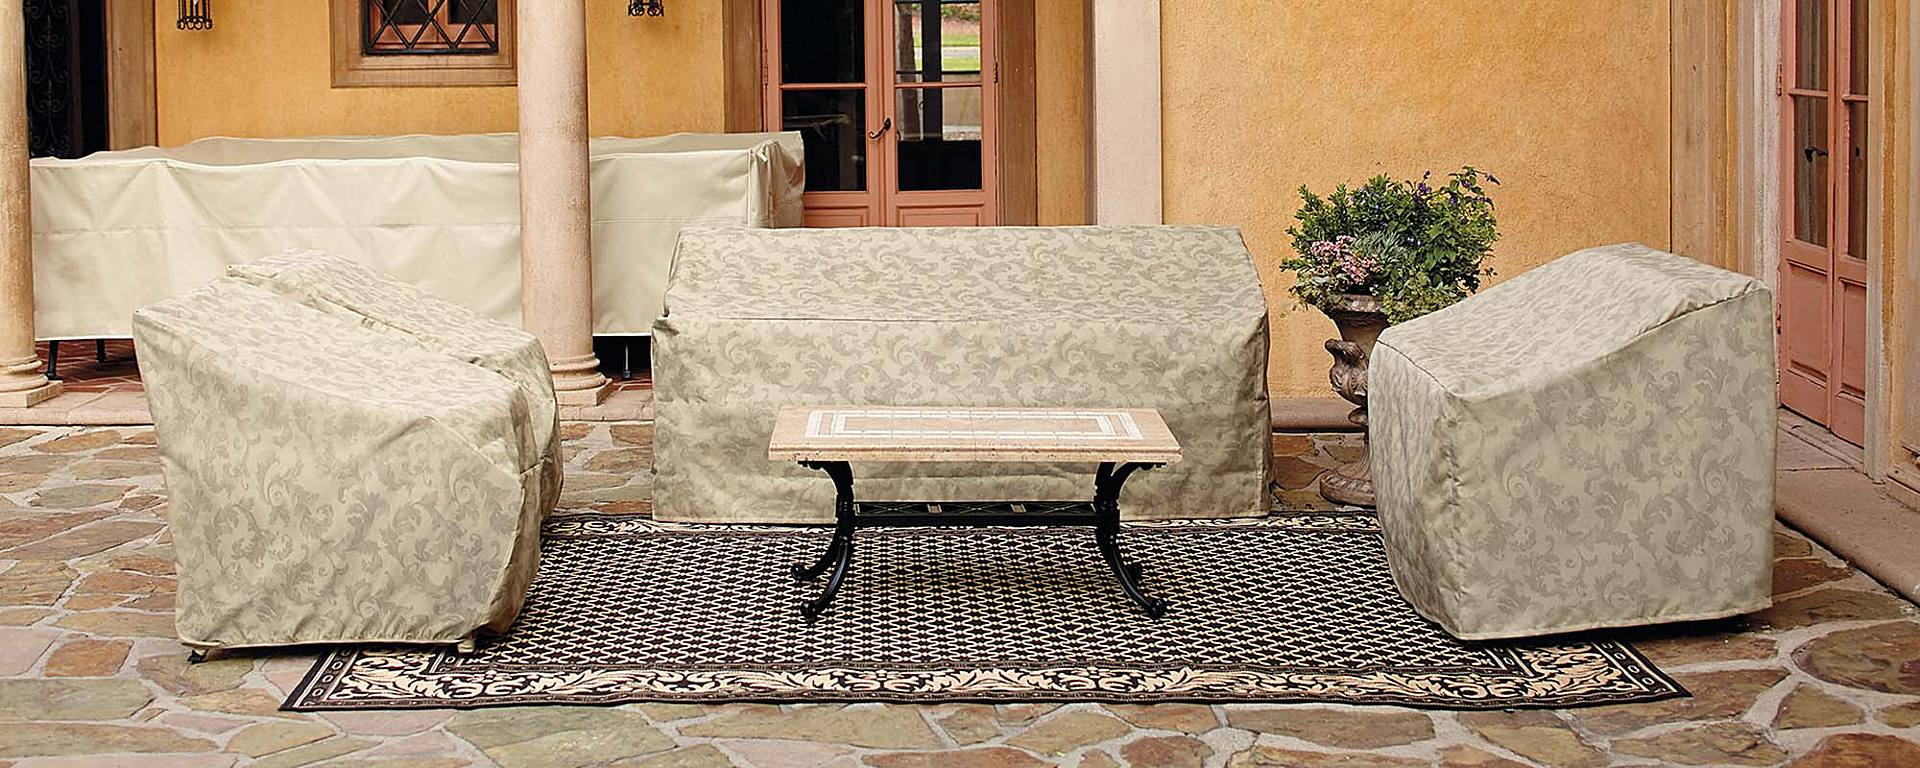 Outdoor Furniture Covers A Buying Guide  Home  Style